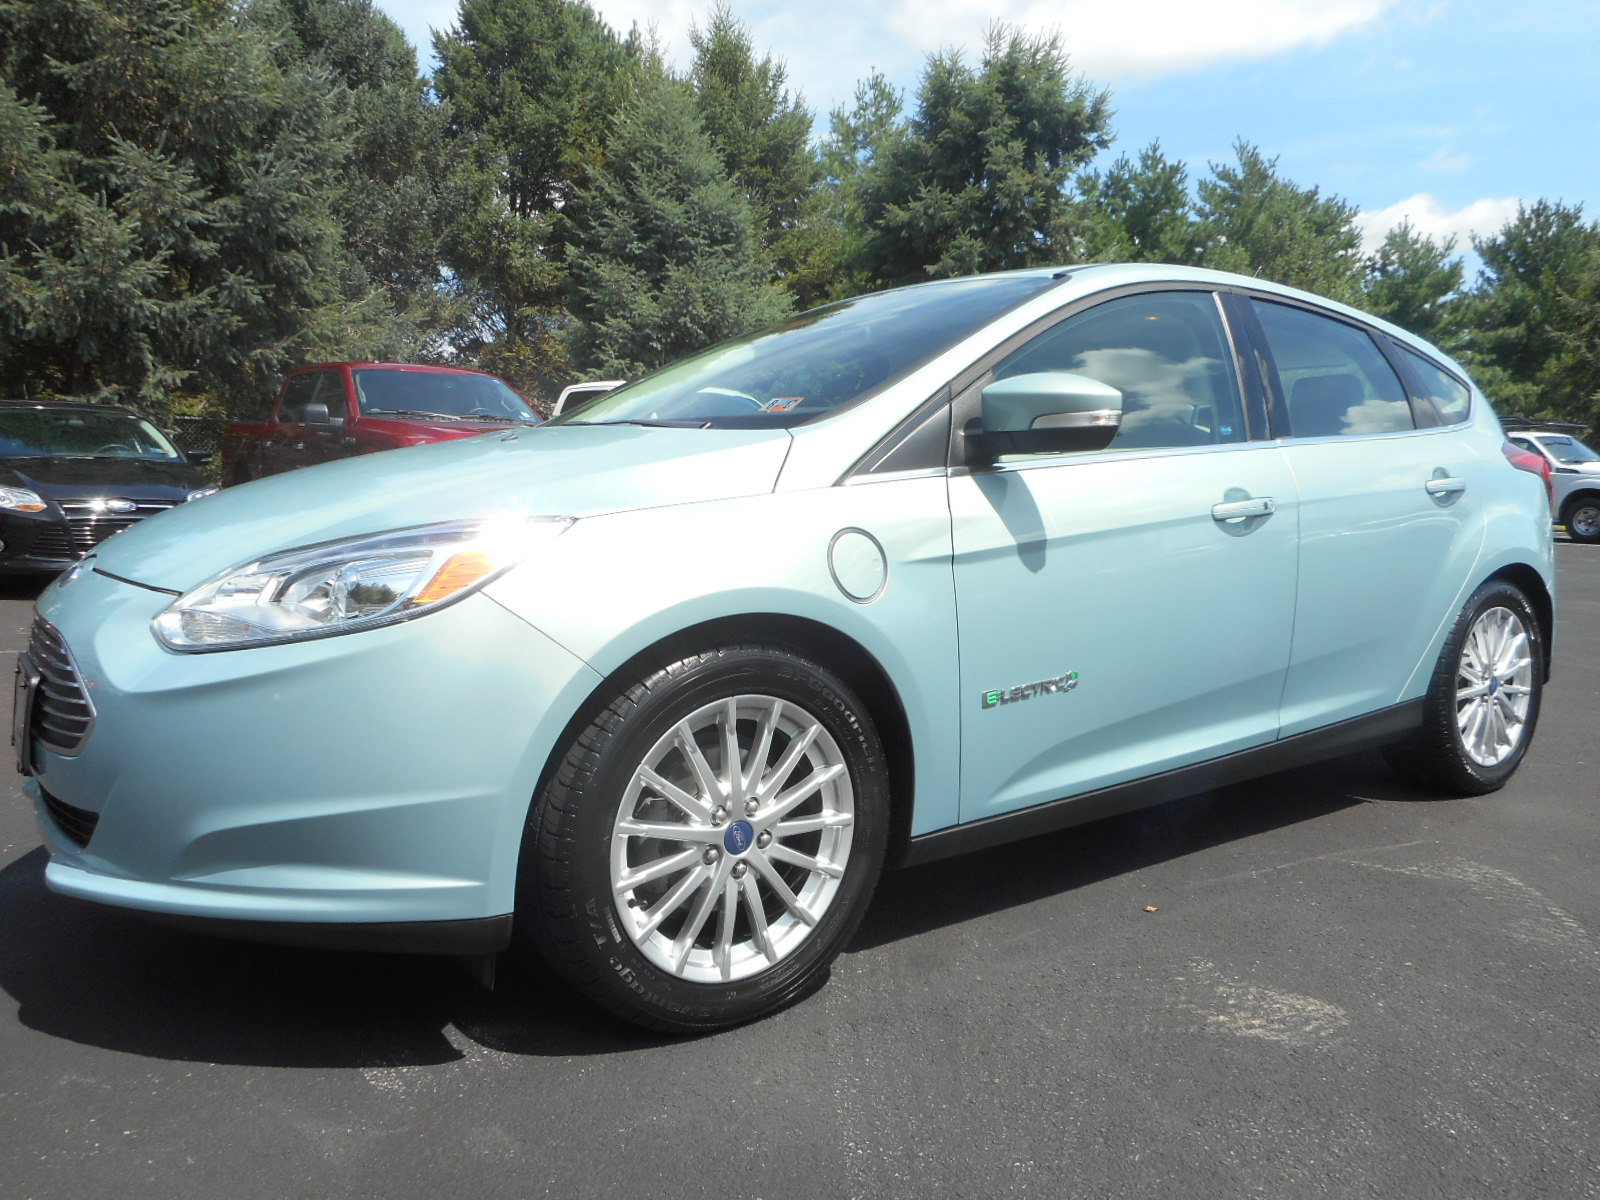 ford focus electric for sale used ford focus electric cars for sale. Black Bedroom Furniture Sets. Home Design Ideas